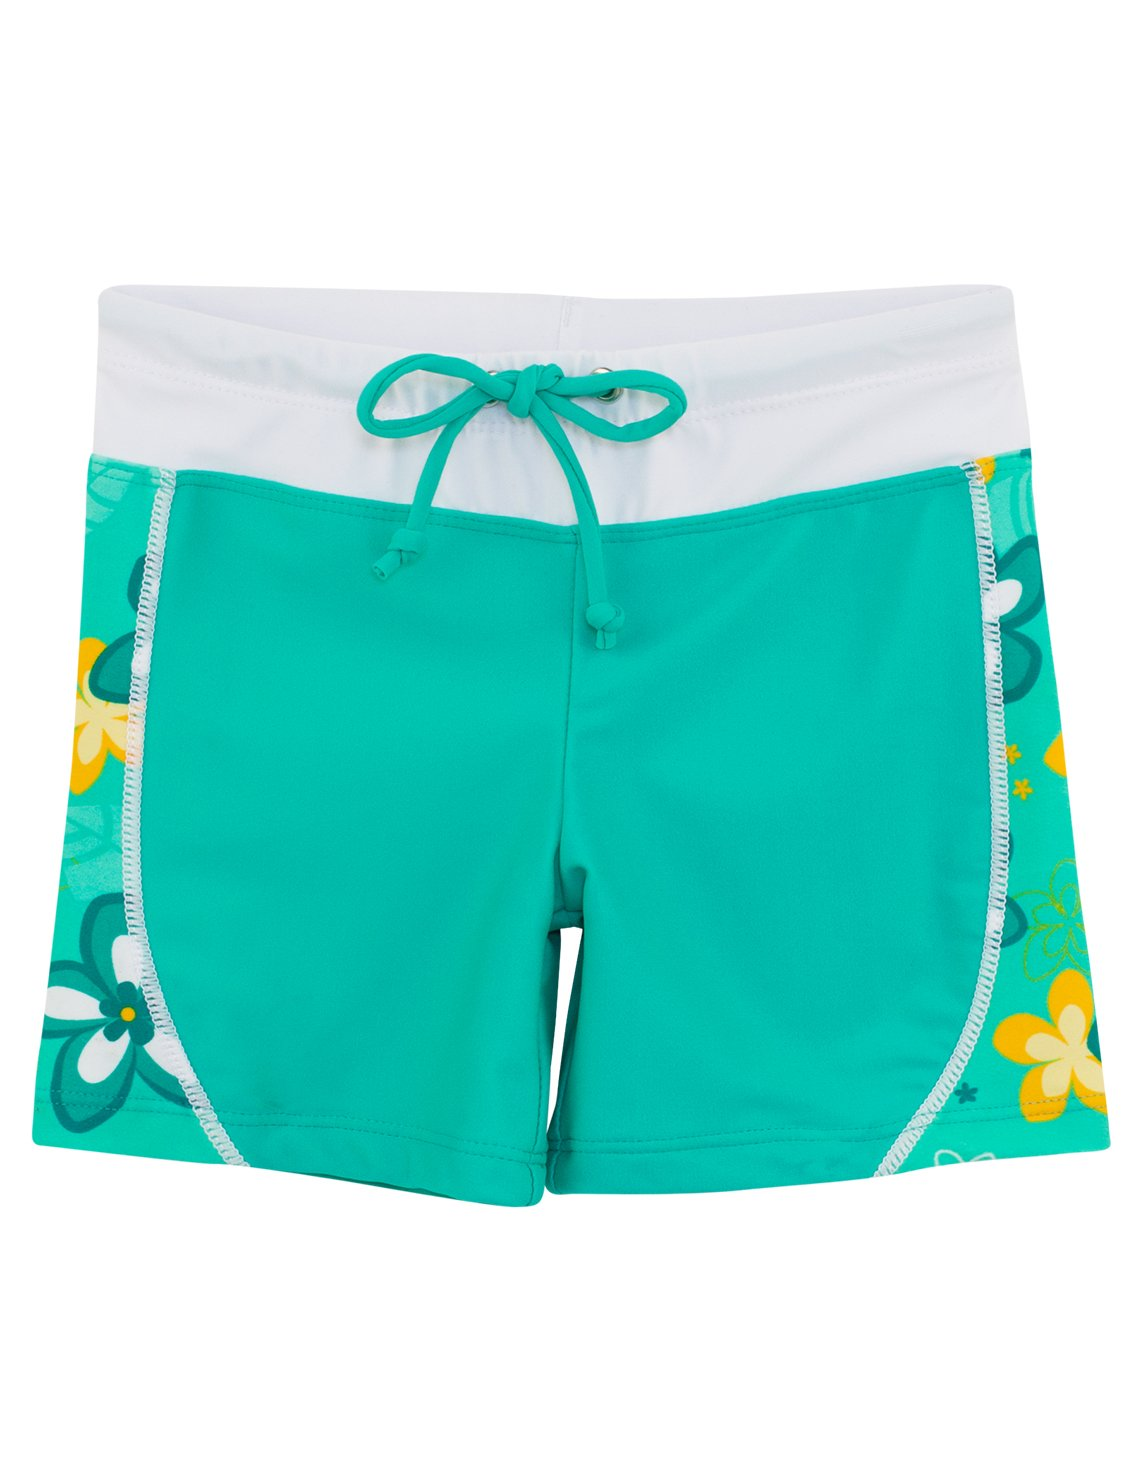 Tuga Girls Swim Shorts 1-14 Years, UPF 50+ Sun Protection Board Short Plangea